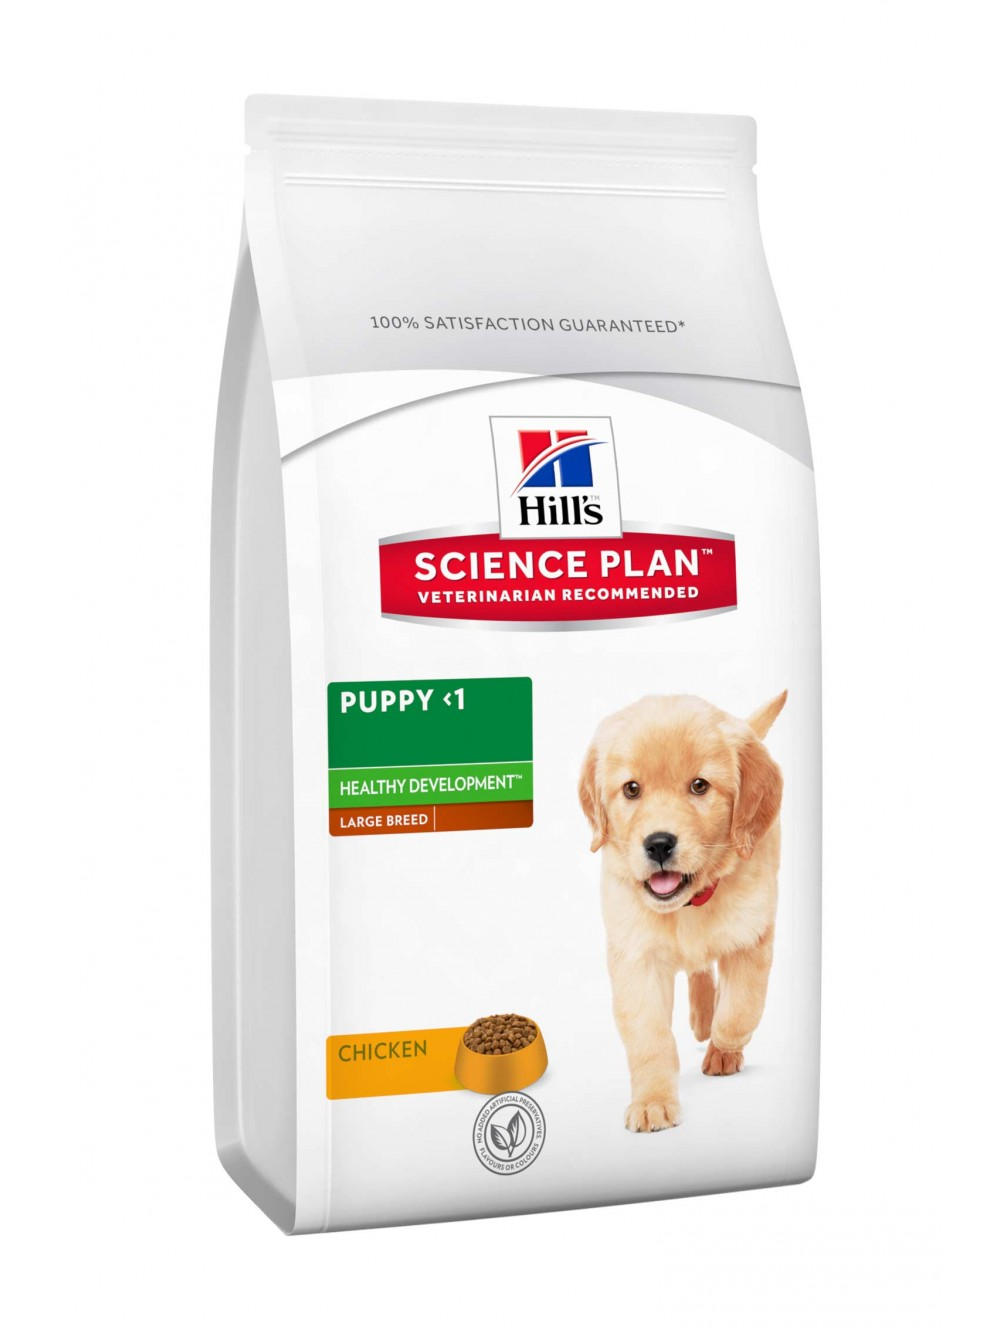 Hills Science Plan Puppy Large Breed chicken 16kg.